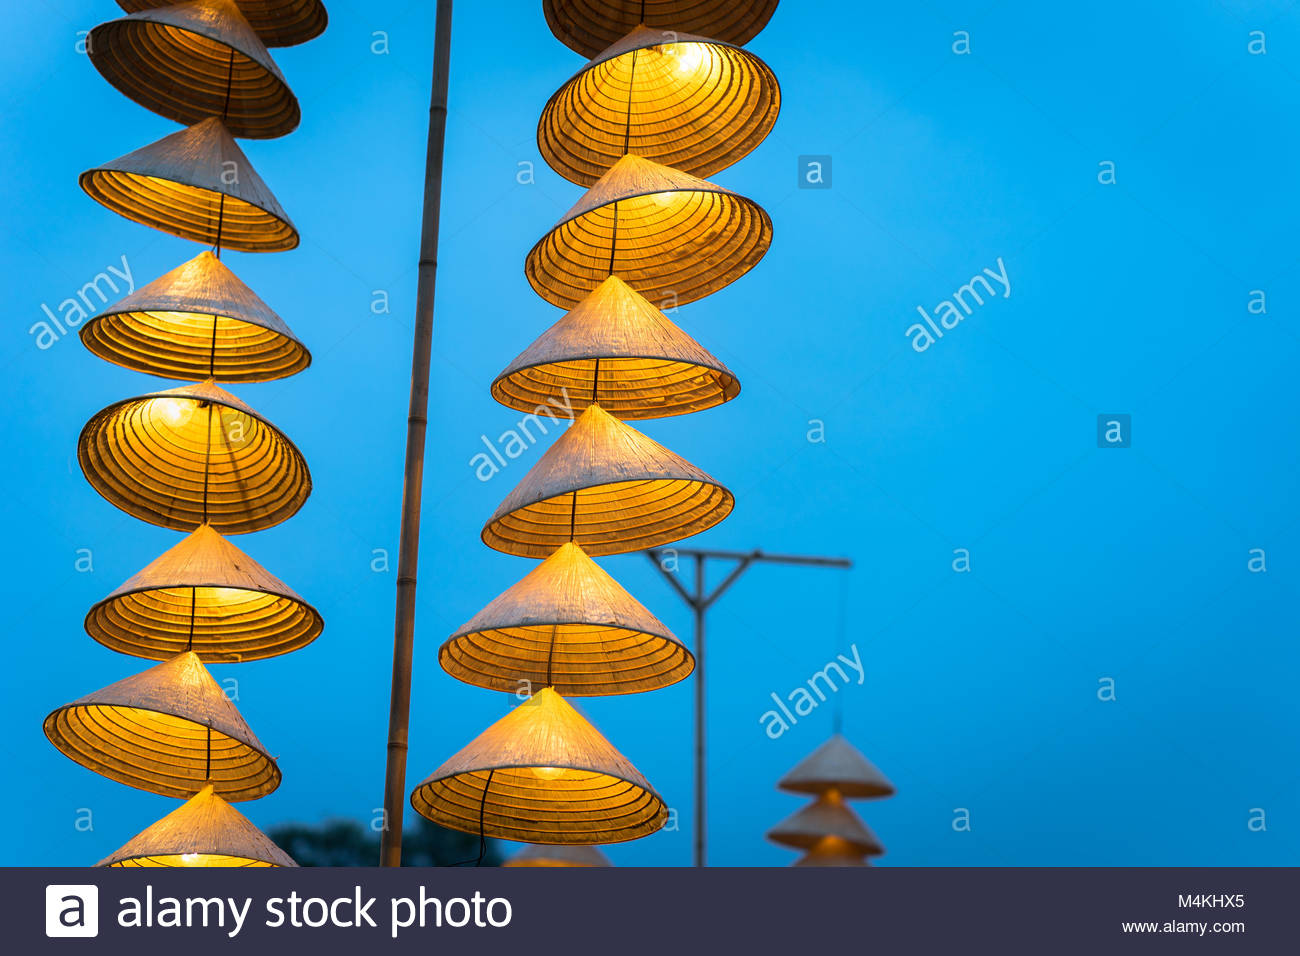 Vector Lamp Bulb Stockfotos & Vector Lamp Bulb Bilder - Seite 6 ...